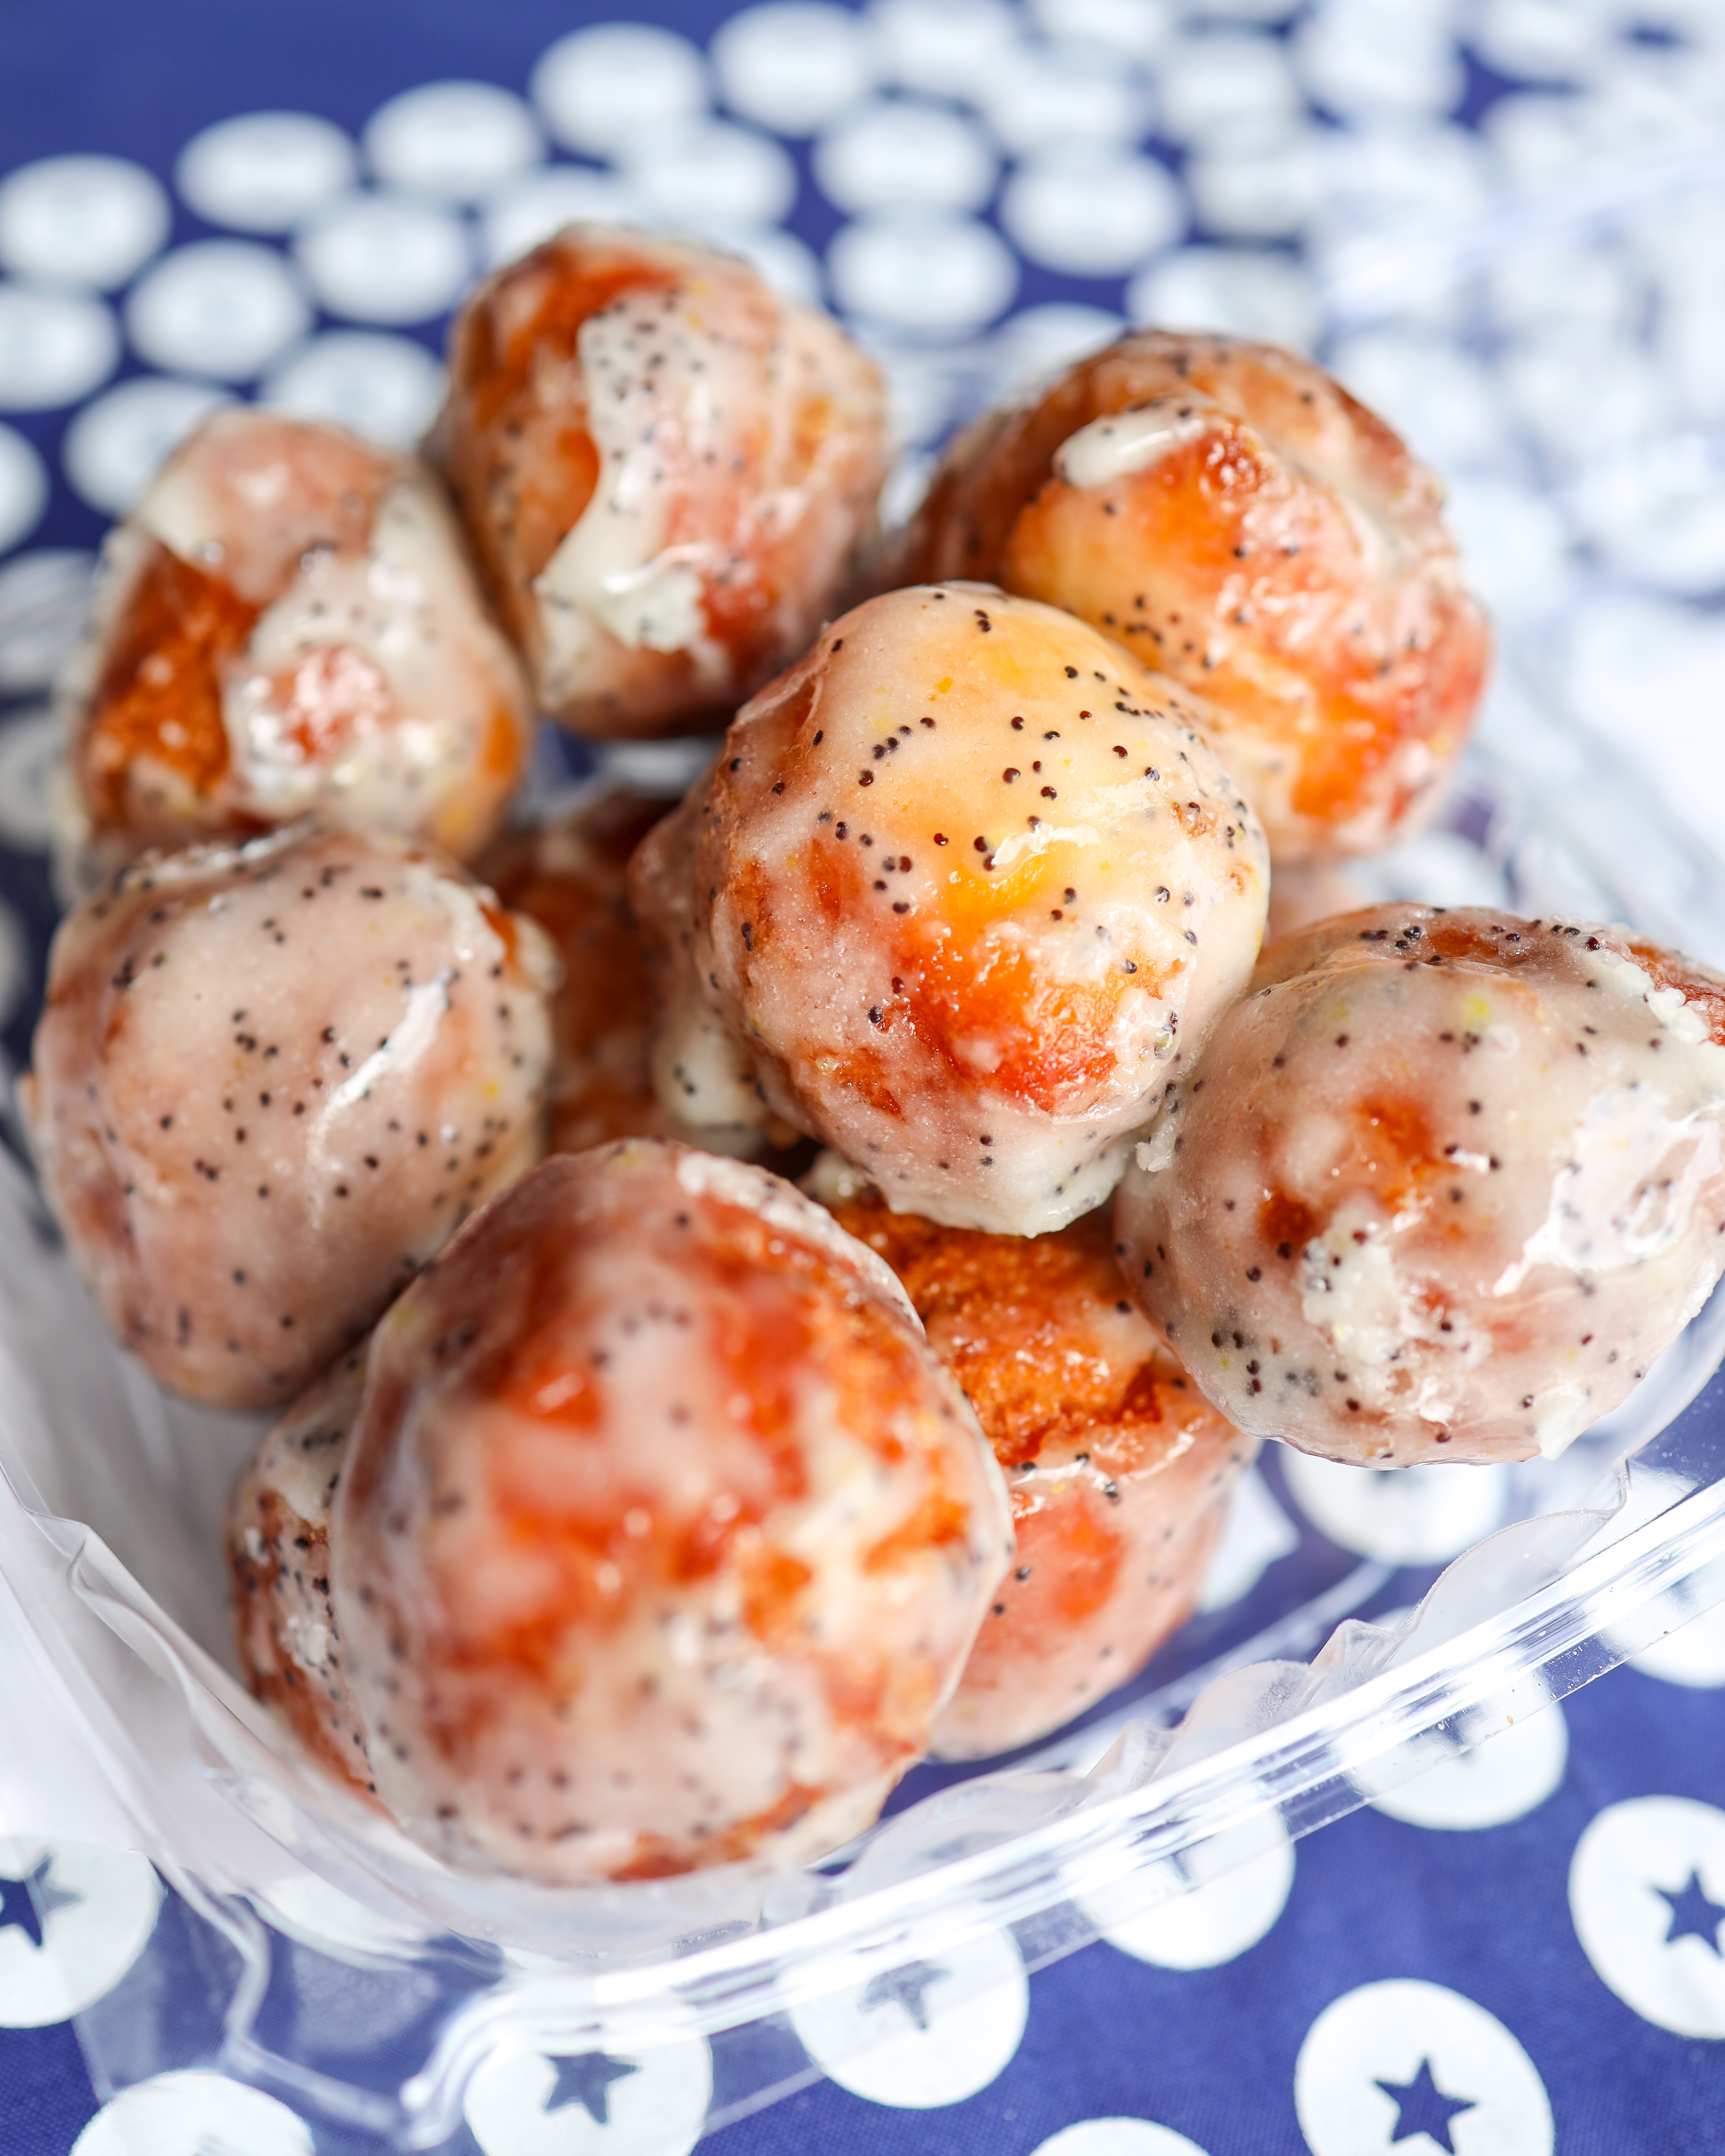 A pile of glazed, poppyseed-dotted doughnut holes sit in a plastic clamshell container. These are Blue Star's buttermilk doughnut holes